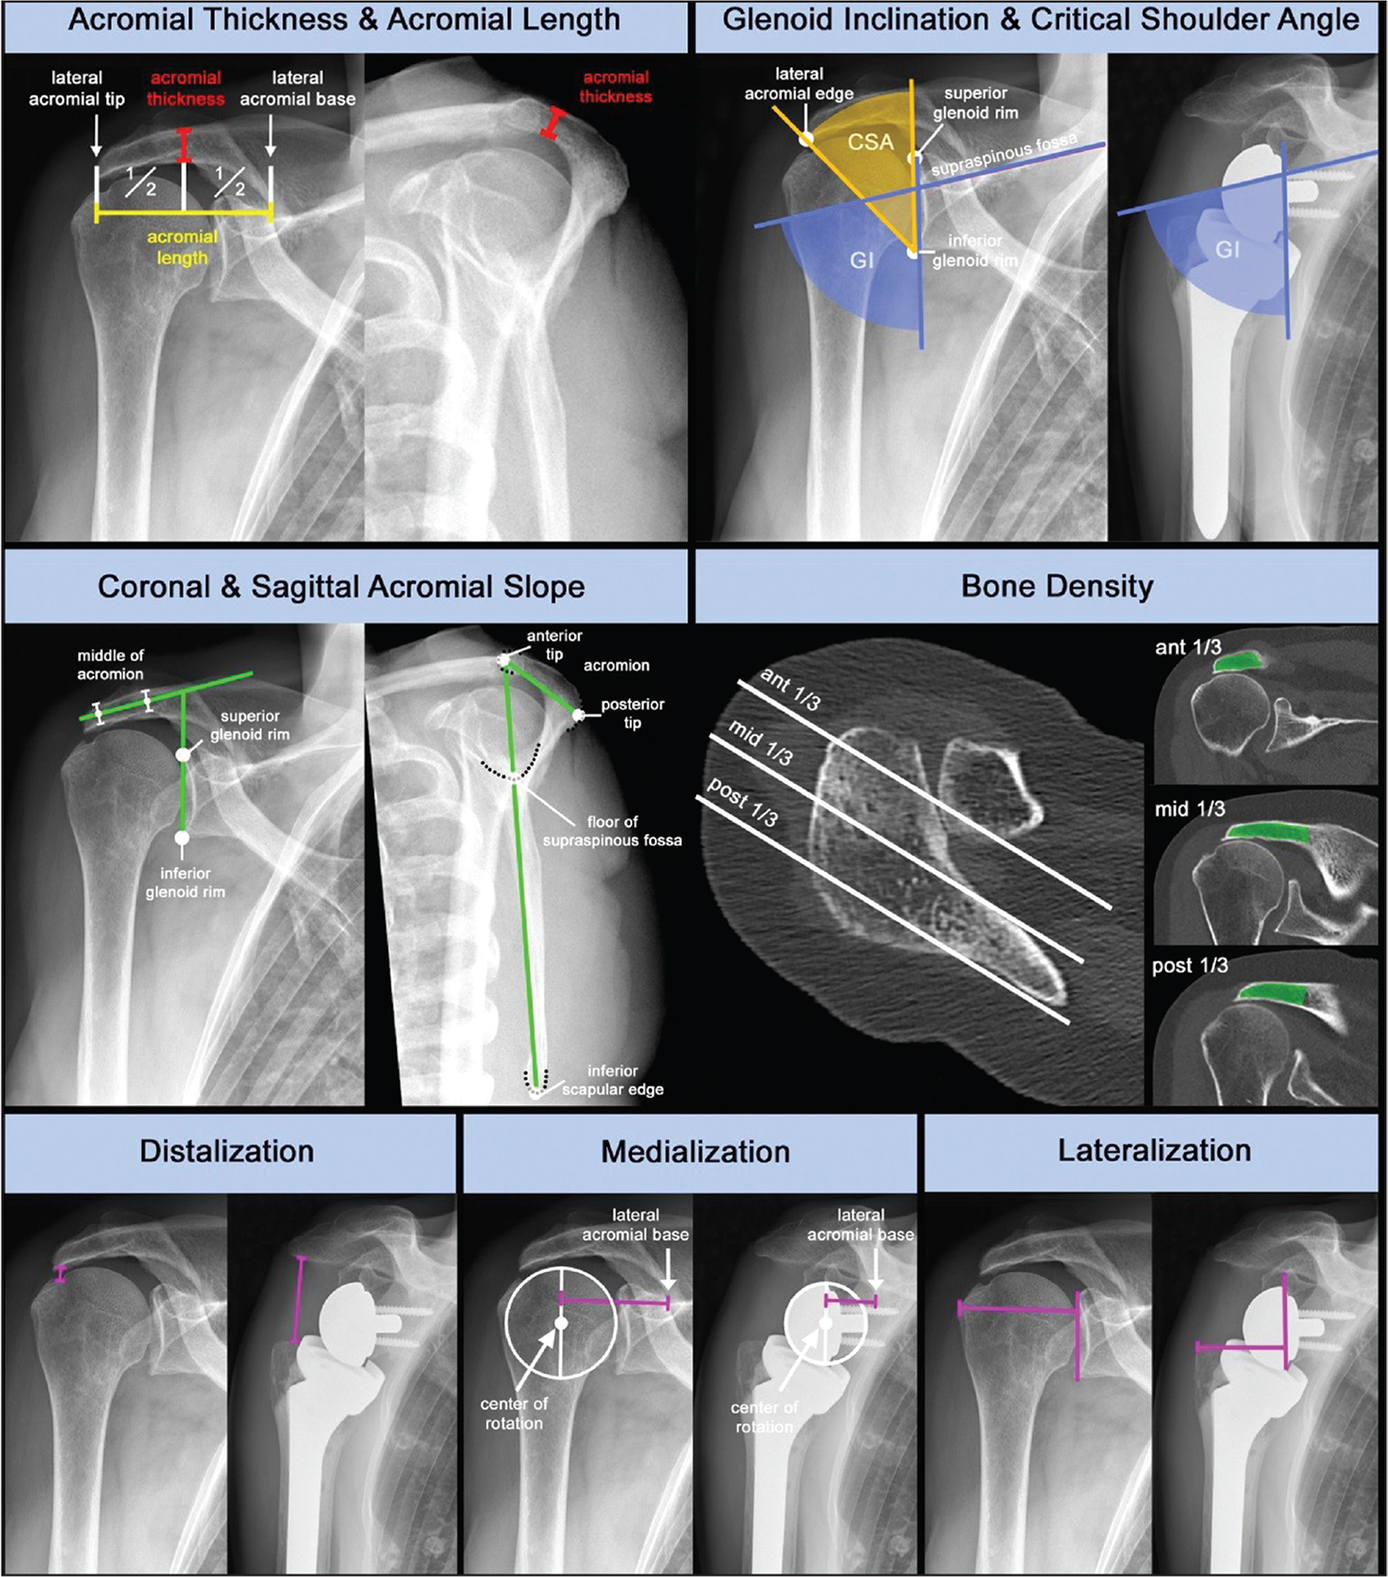 Pre- and postoperative measurements on plain radiographs and computed tomography scans.